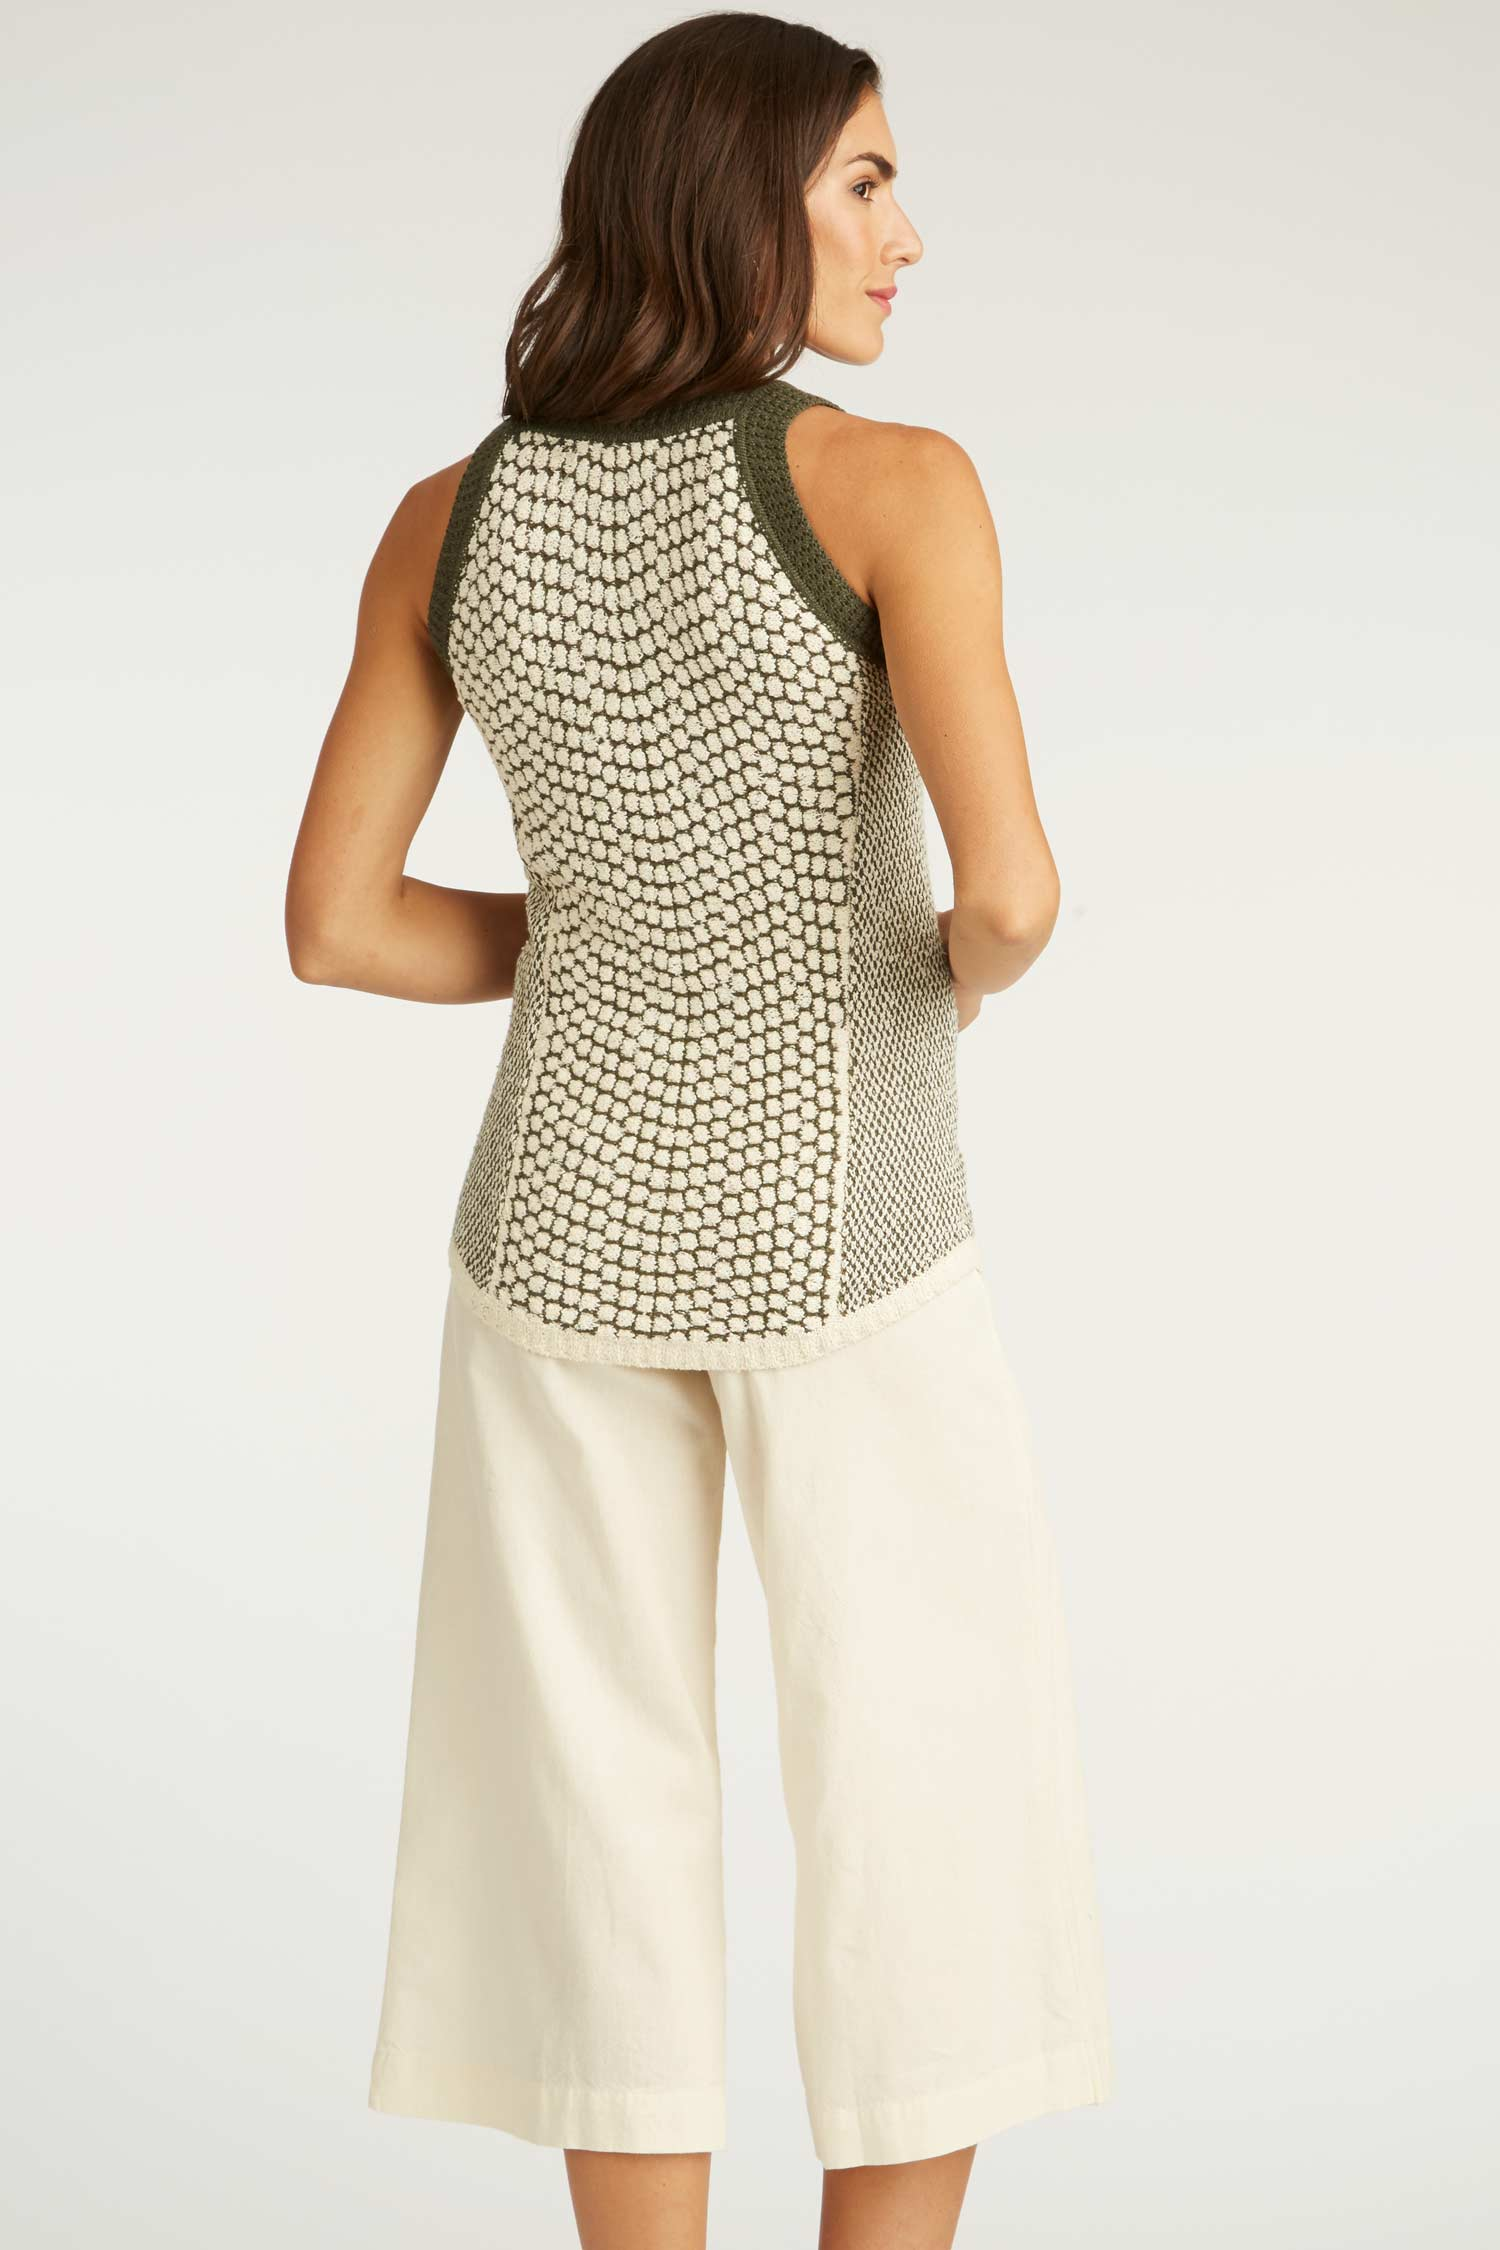 Womens Organic Cotton Crochet + Knit Top | Indigenous